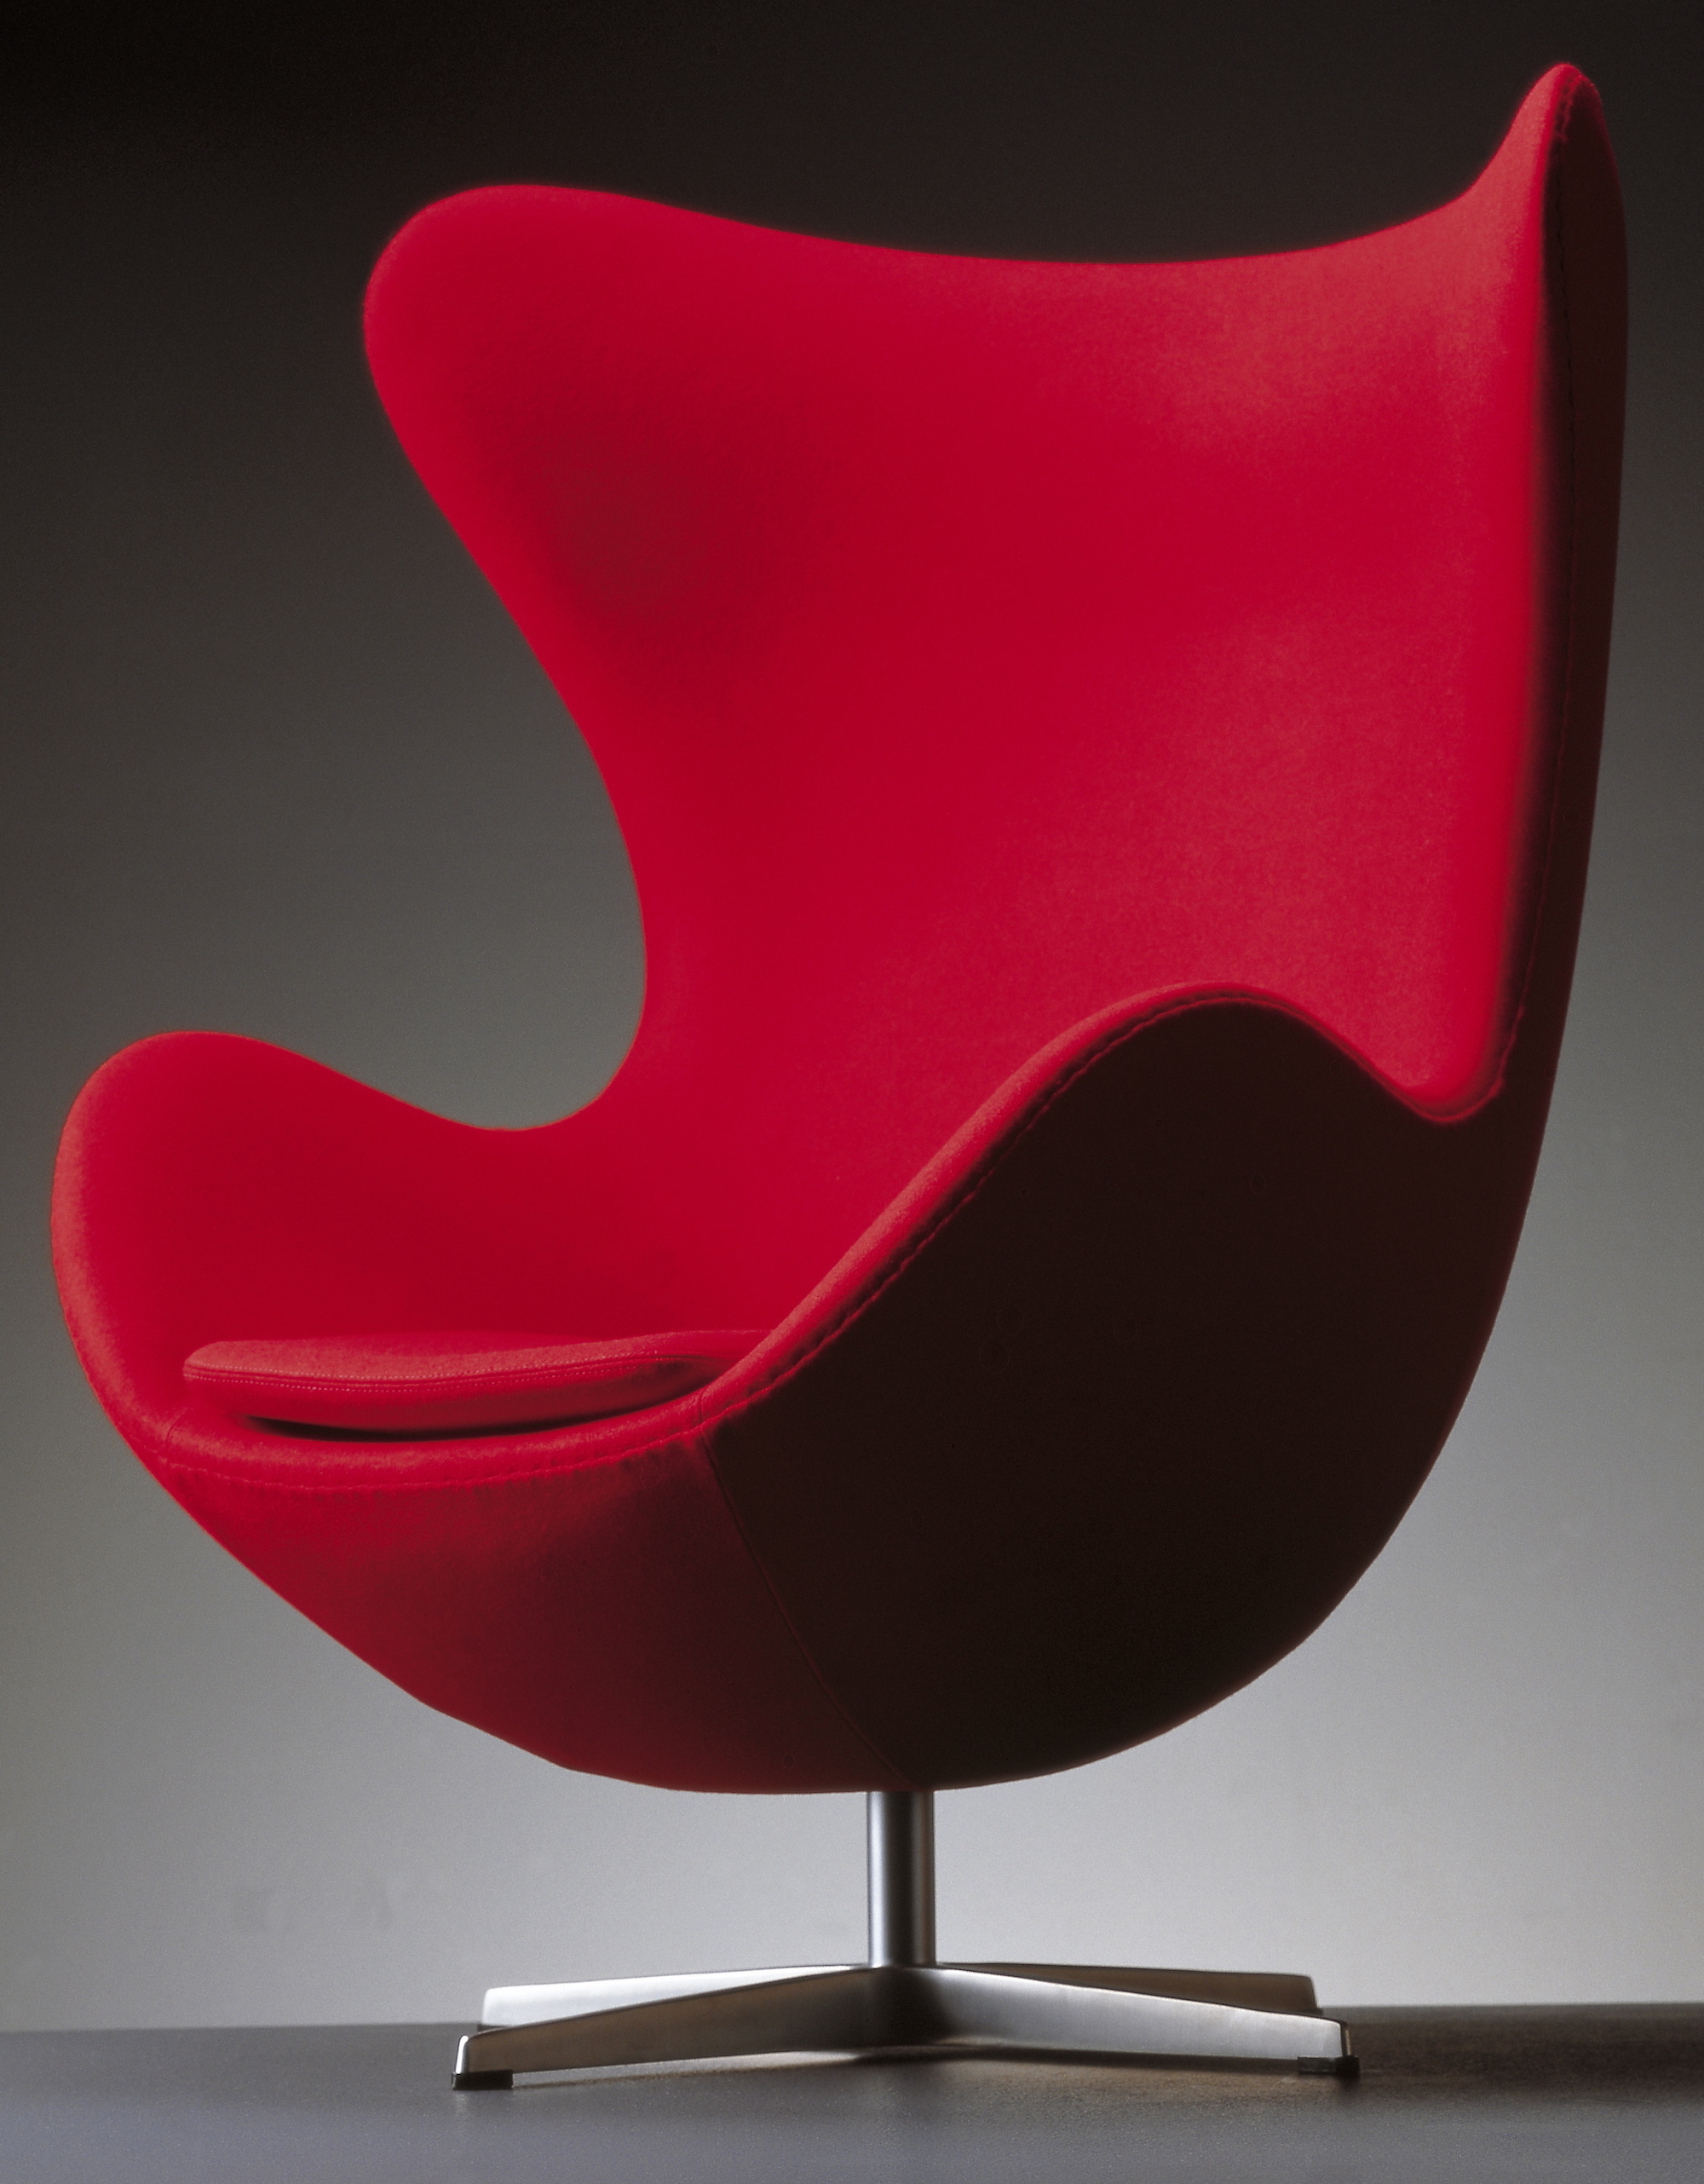 Fritz hansen egg chair design arne jacobsen for Egg chair jacobsen